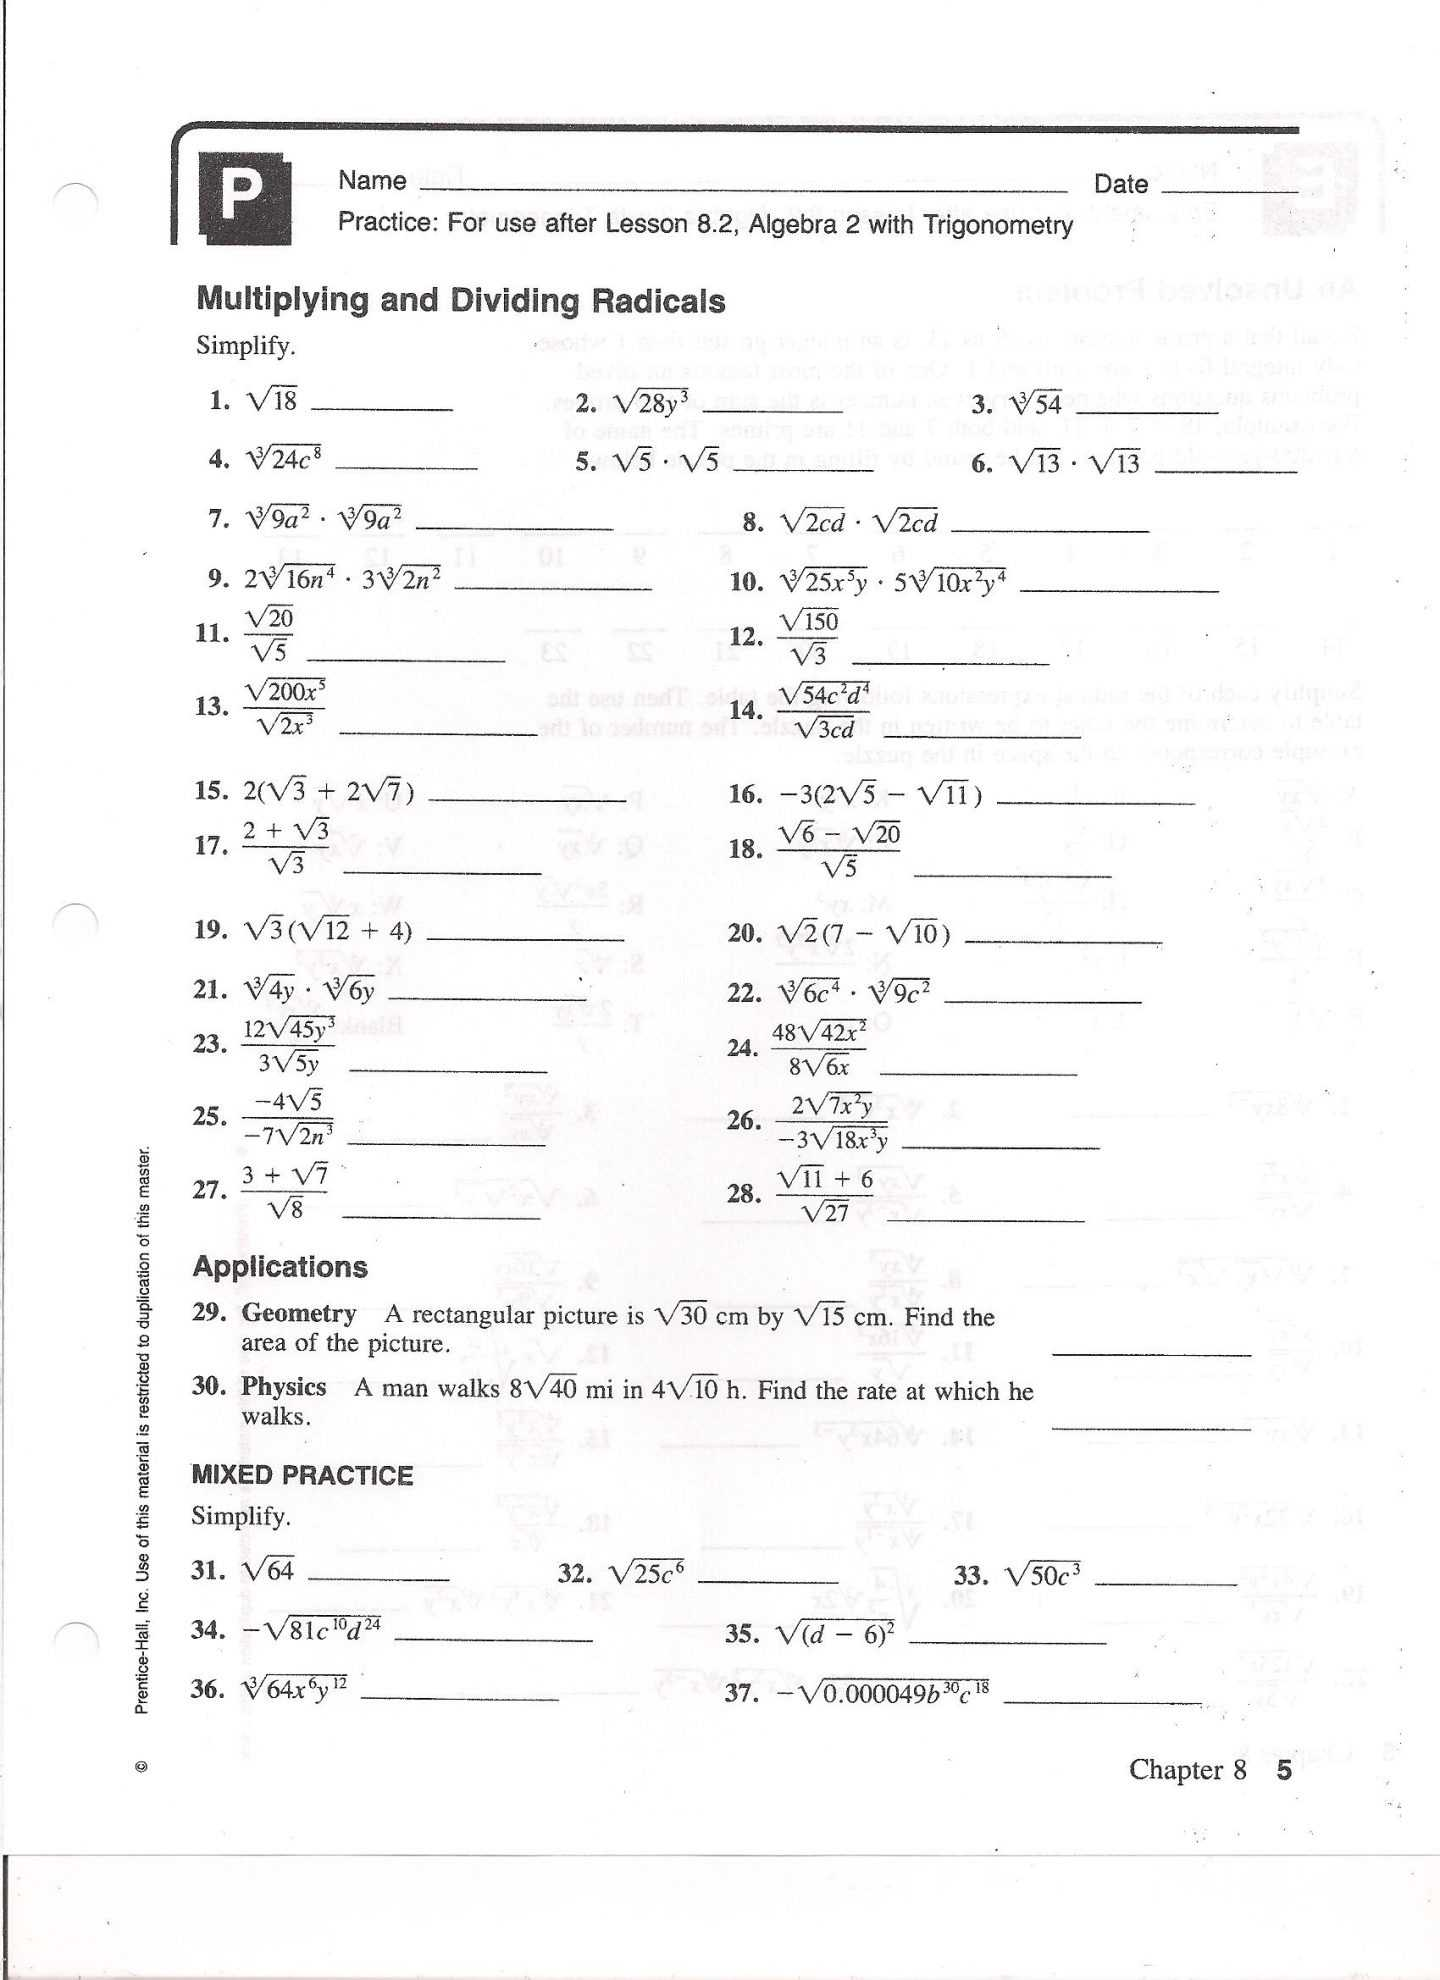 Radicals and Rational Exponents Worksheet Answers Along with Simplifying Rational Expressions Worksheet with Answers